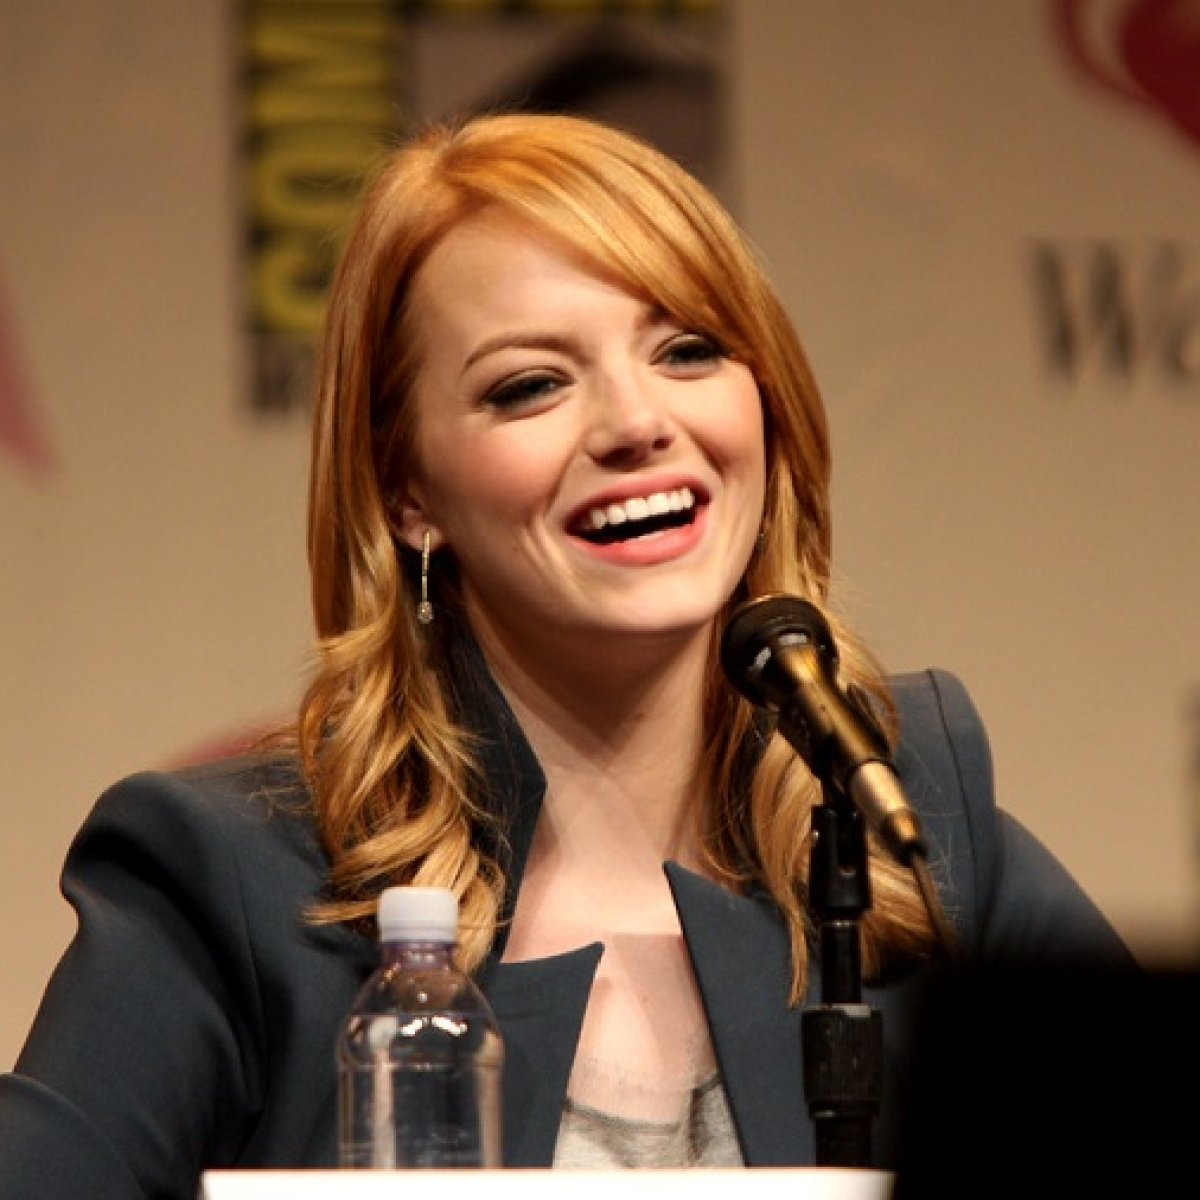 Emma Stone joins campaign to raise awareness about mental health in times of coronavirus